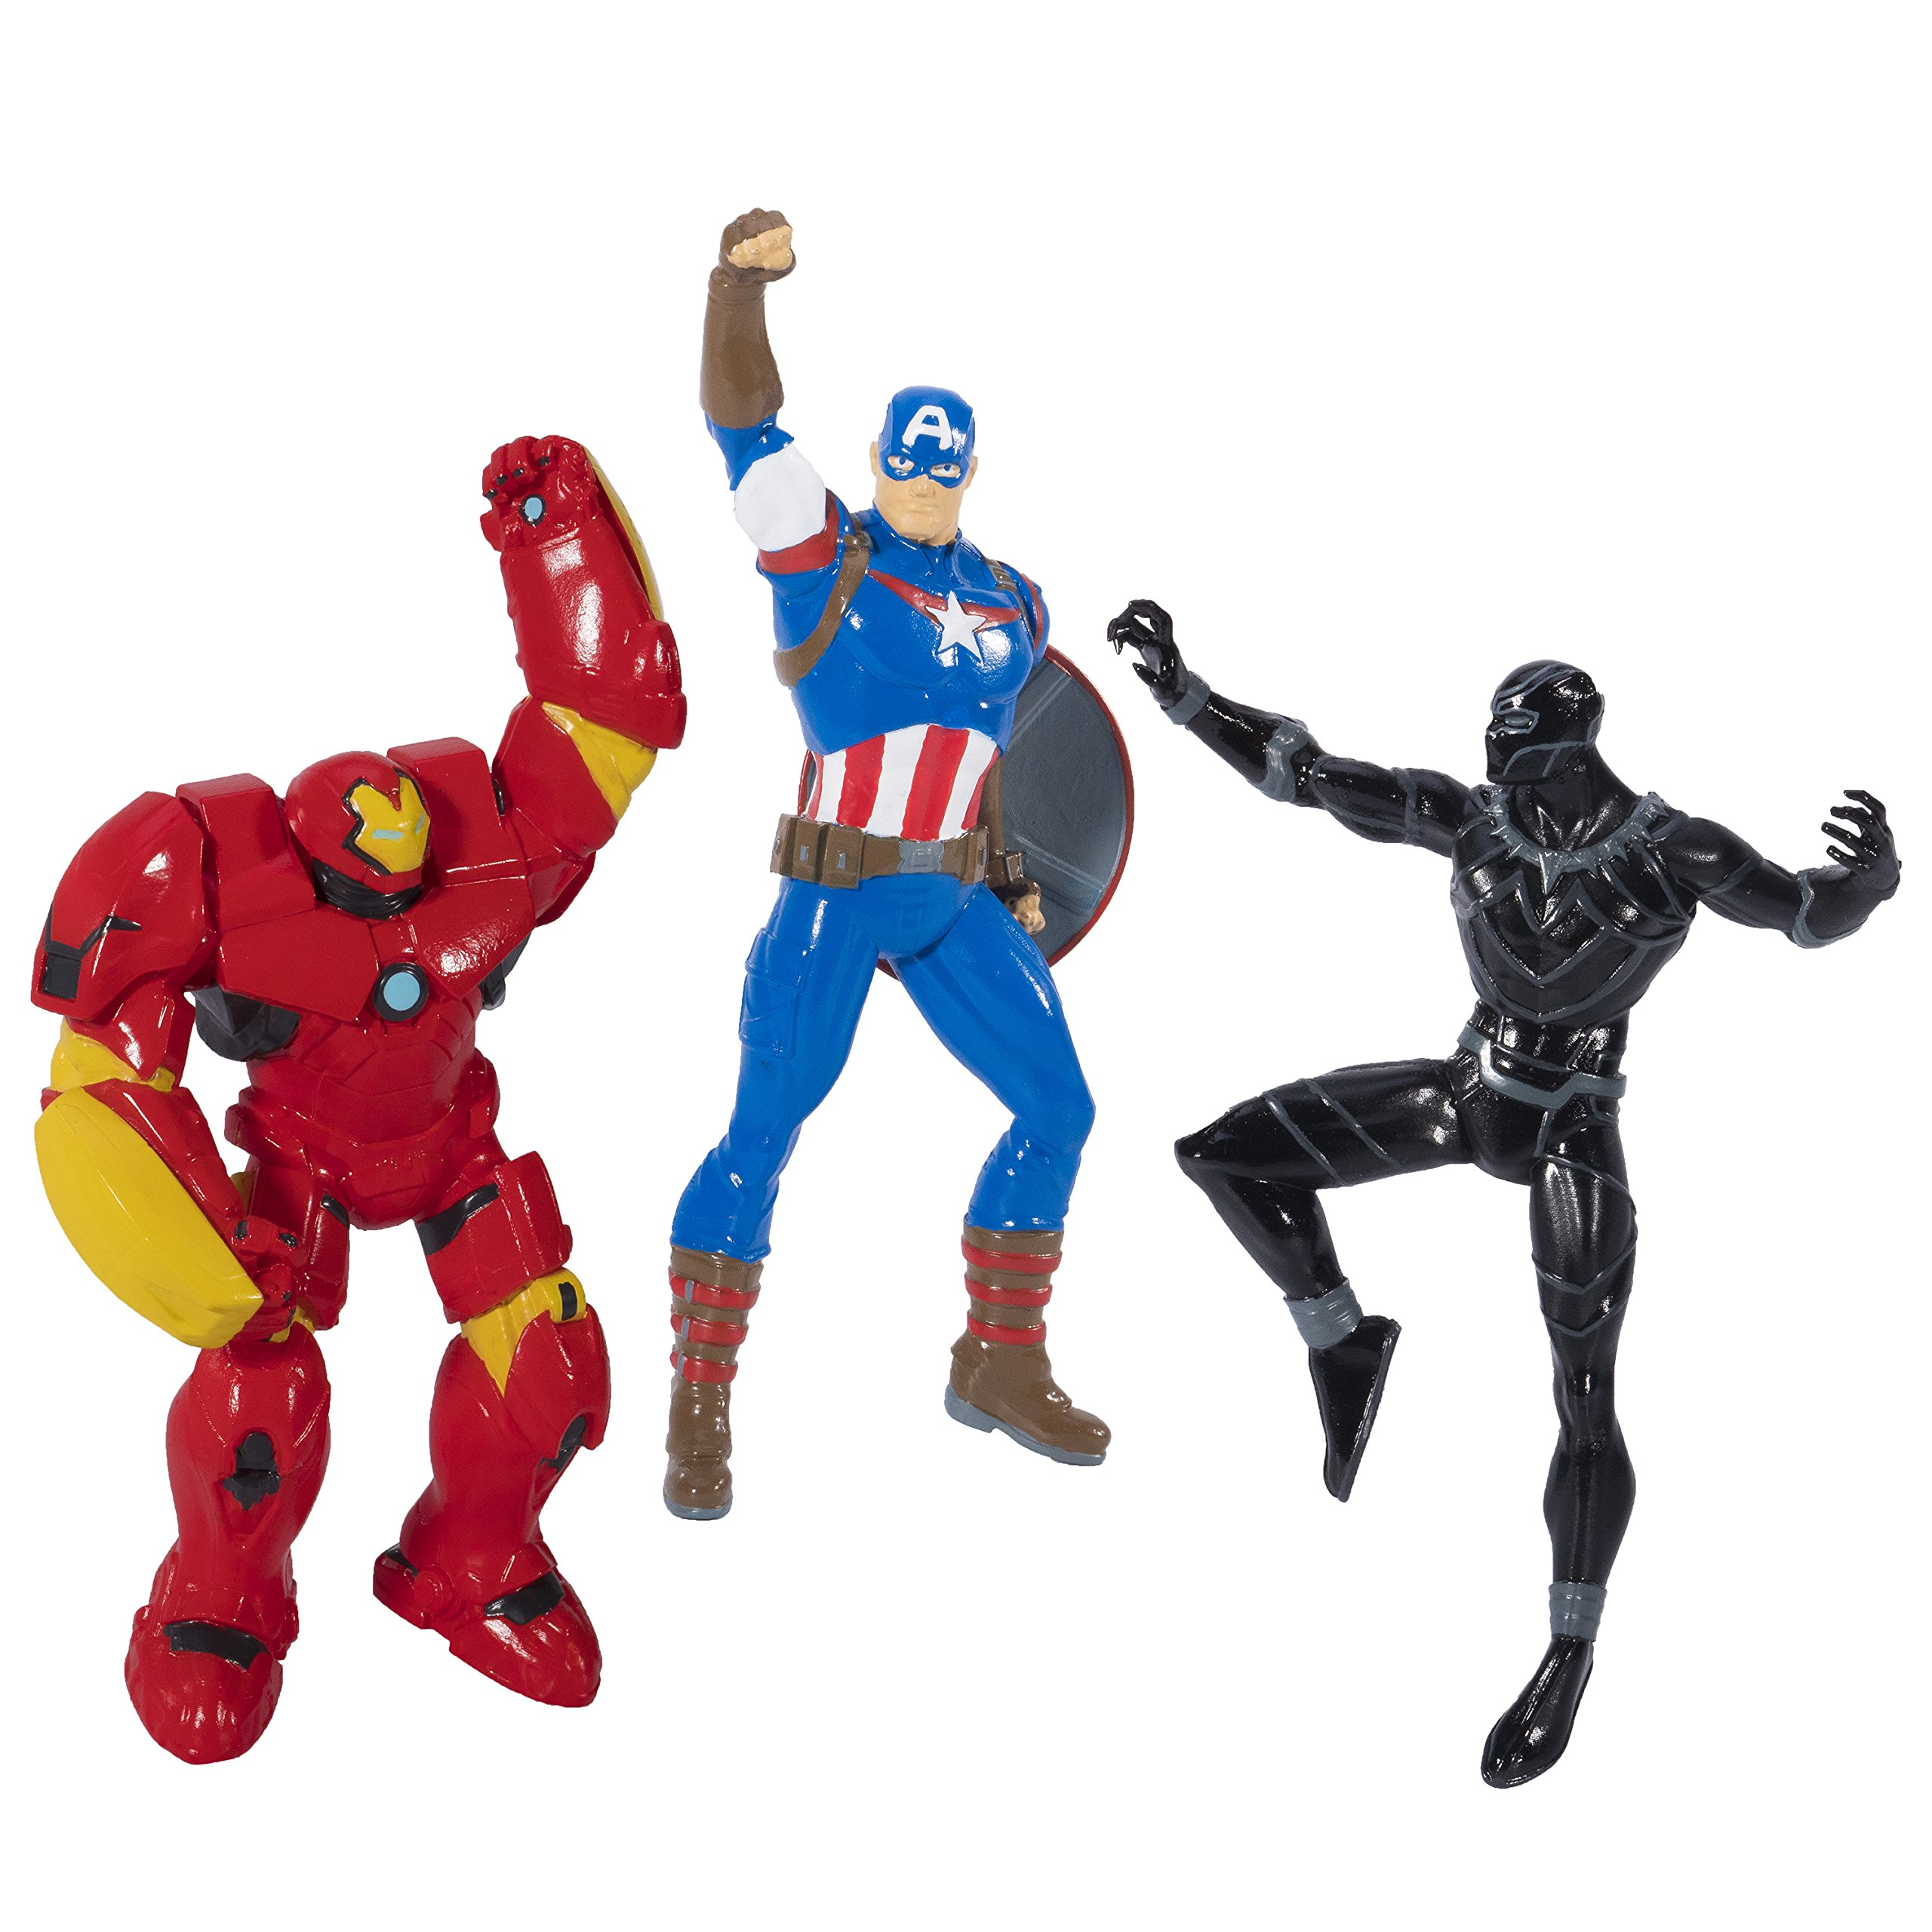 SwimWays Marvel Avengers Dive Characters - Captain America, Black Panther, and Hulk Buster